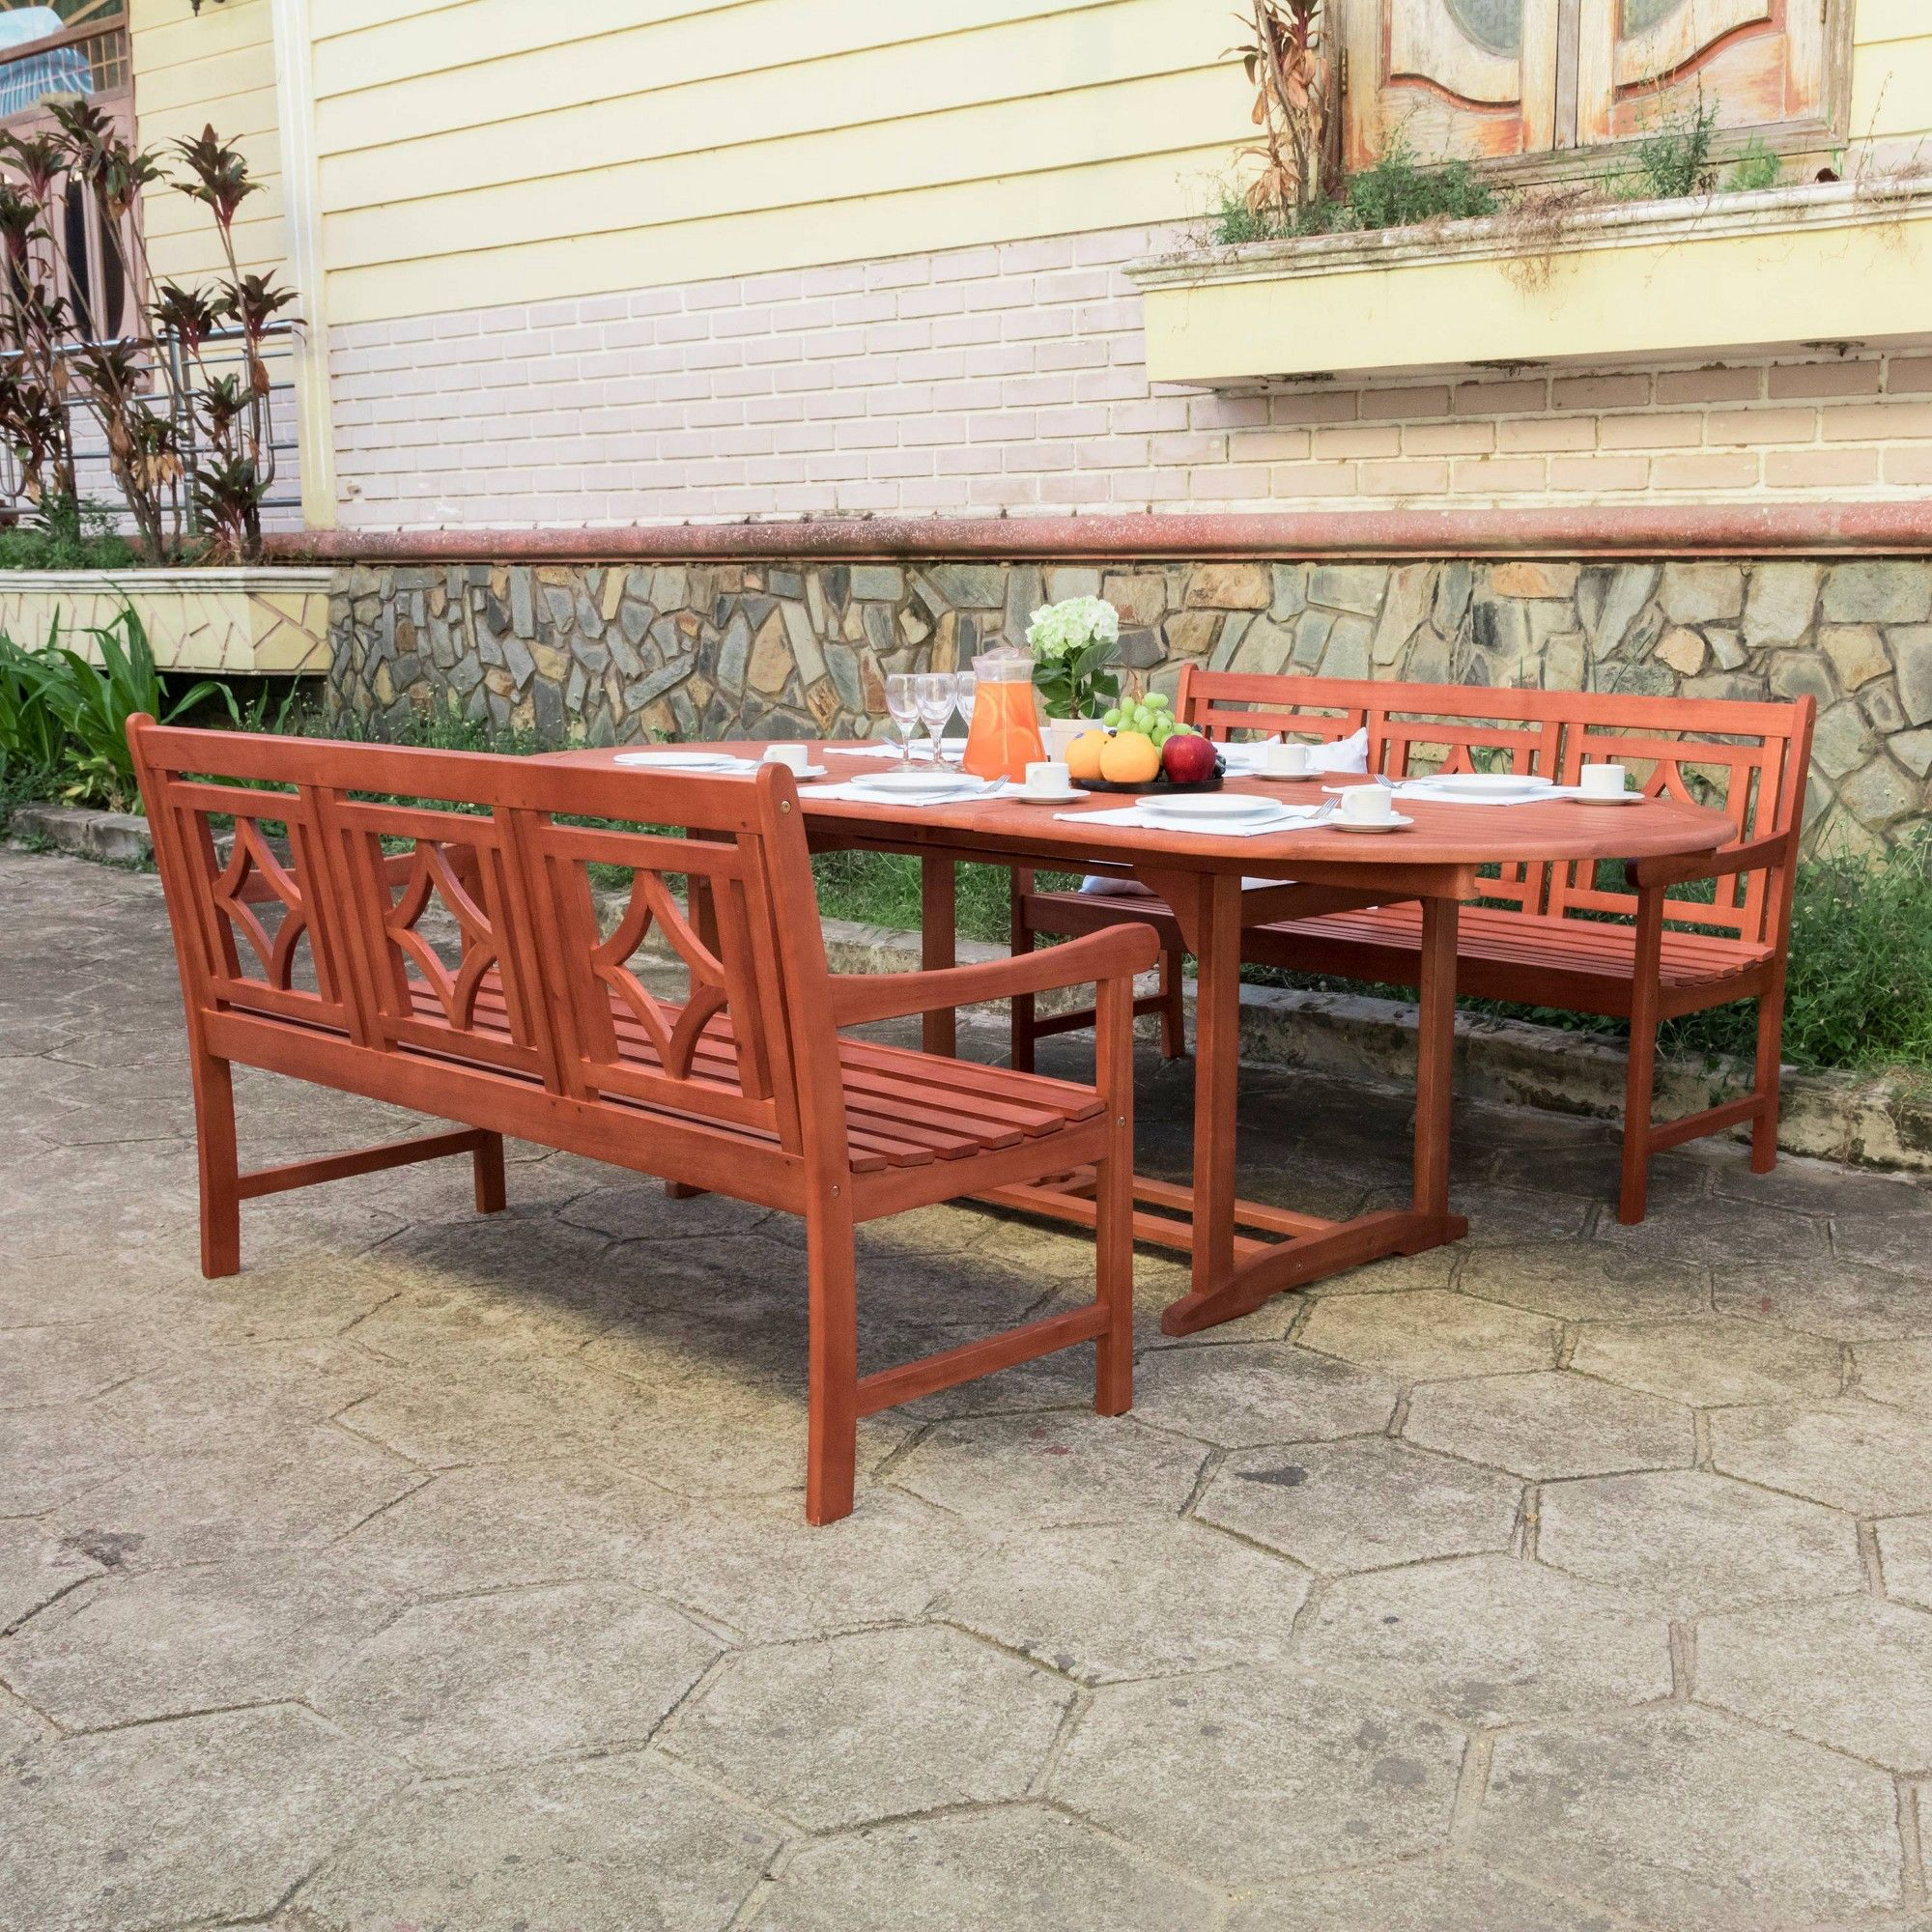 Vermont Extendable Garden Table And Chair Set: Malibu 3pc Wood Extendable Outdoor Patio Dining Set